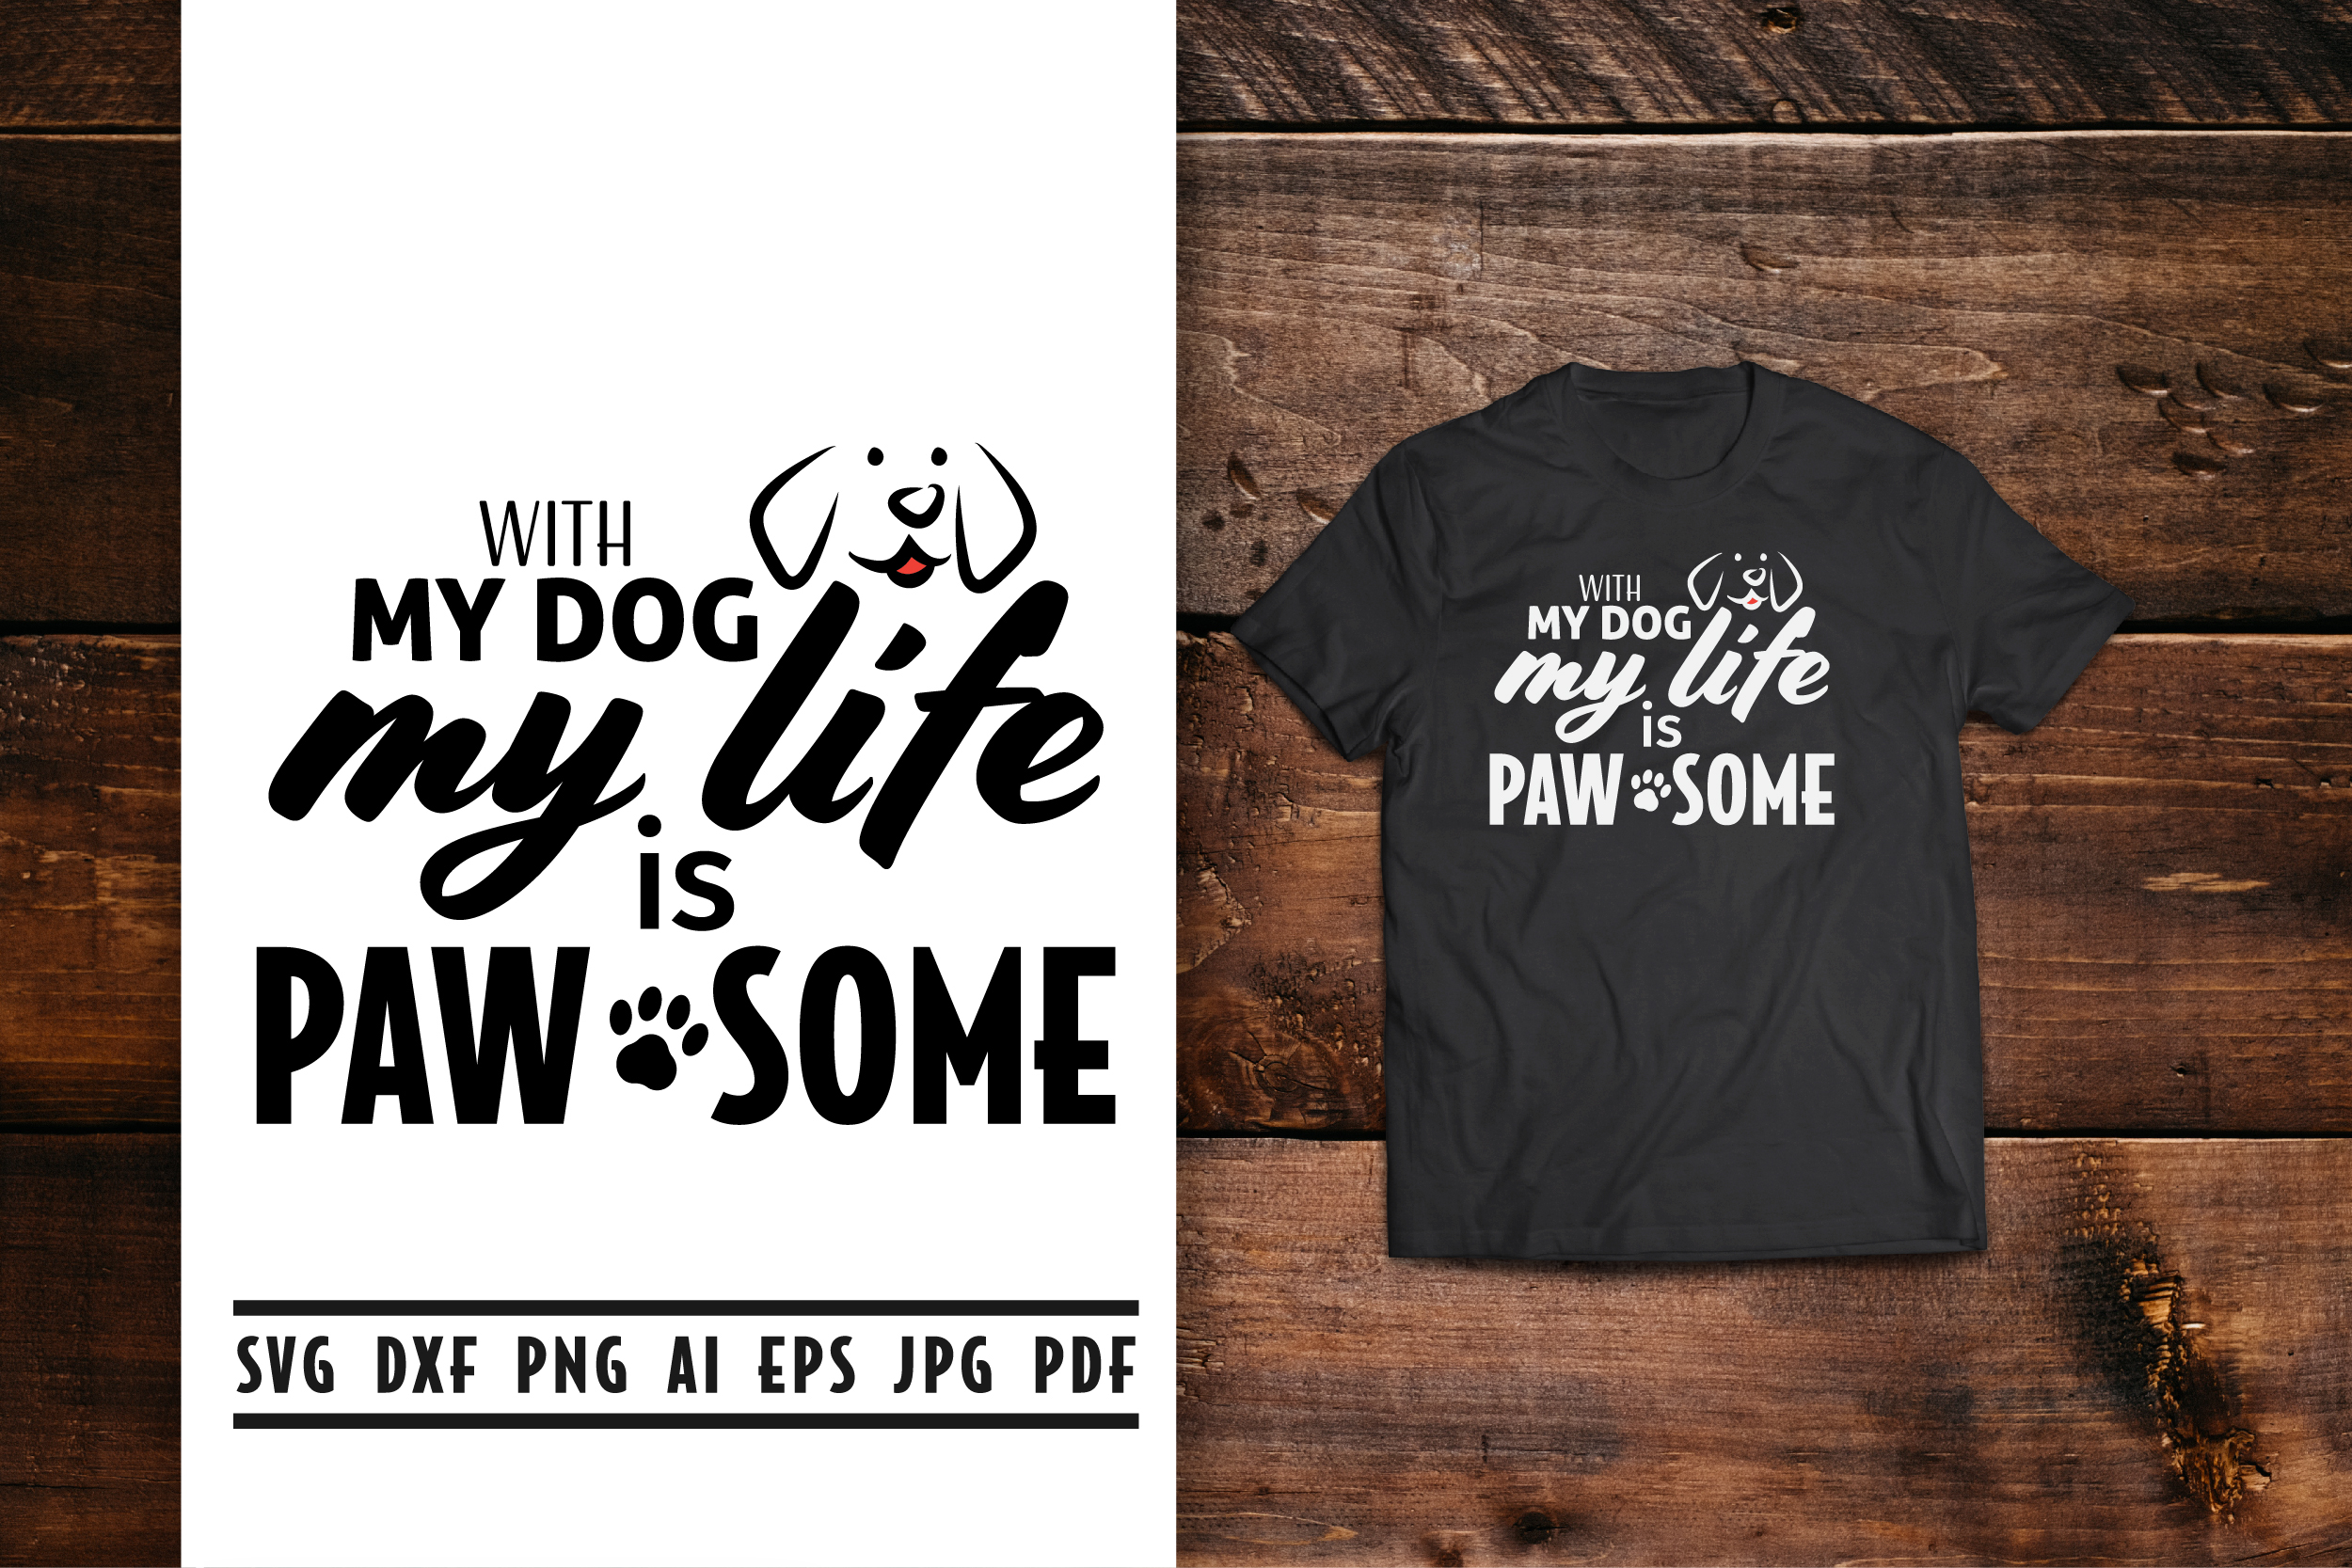 Download Free With My Dog My Life Is Paw Some Graphic By Vectorbundles for Cricut Explore, Silhouette and other cutting machines.